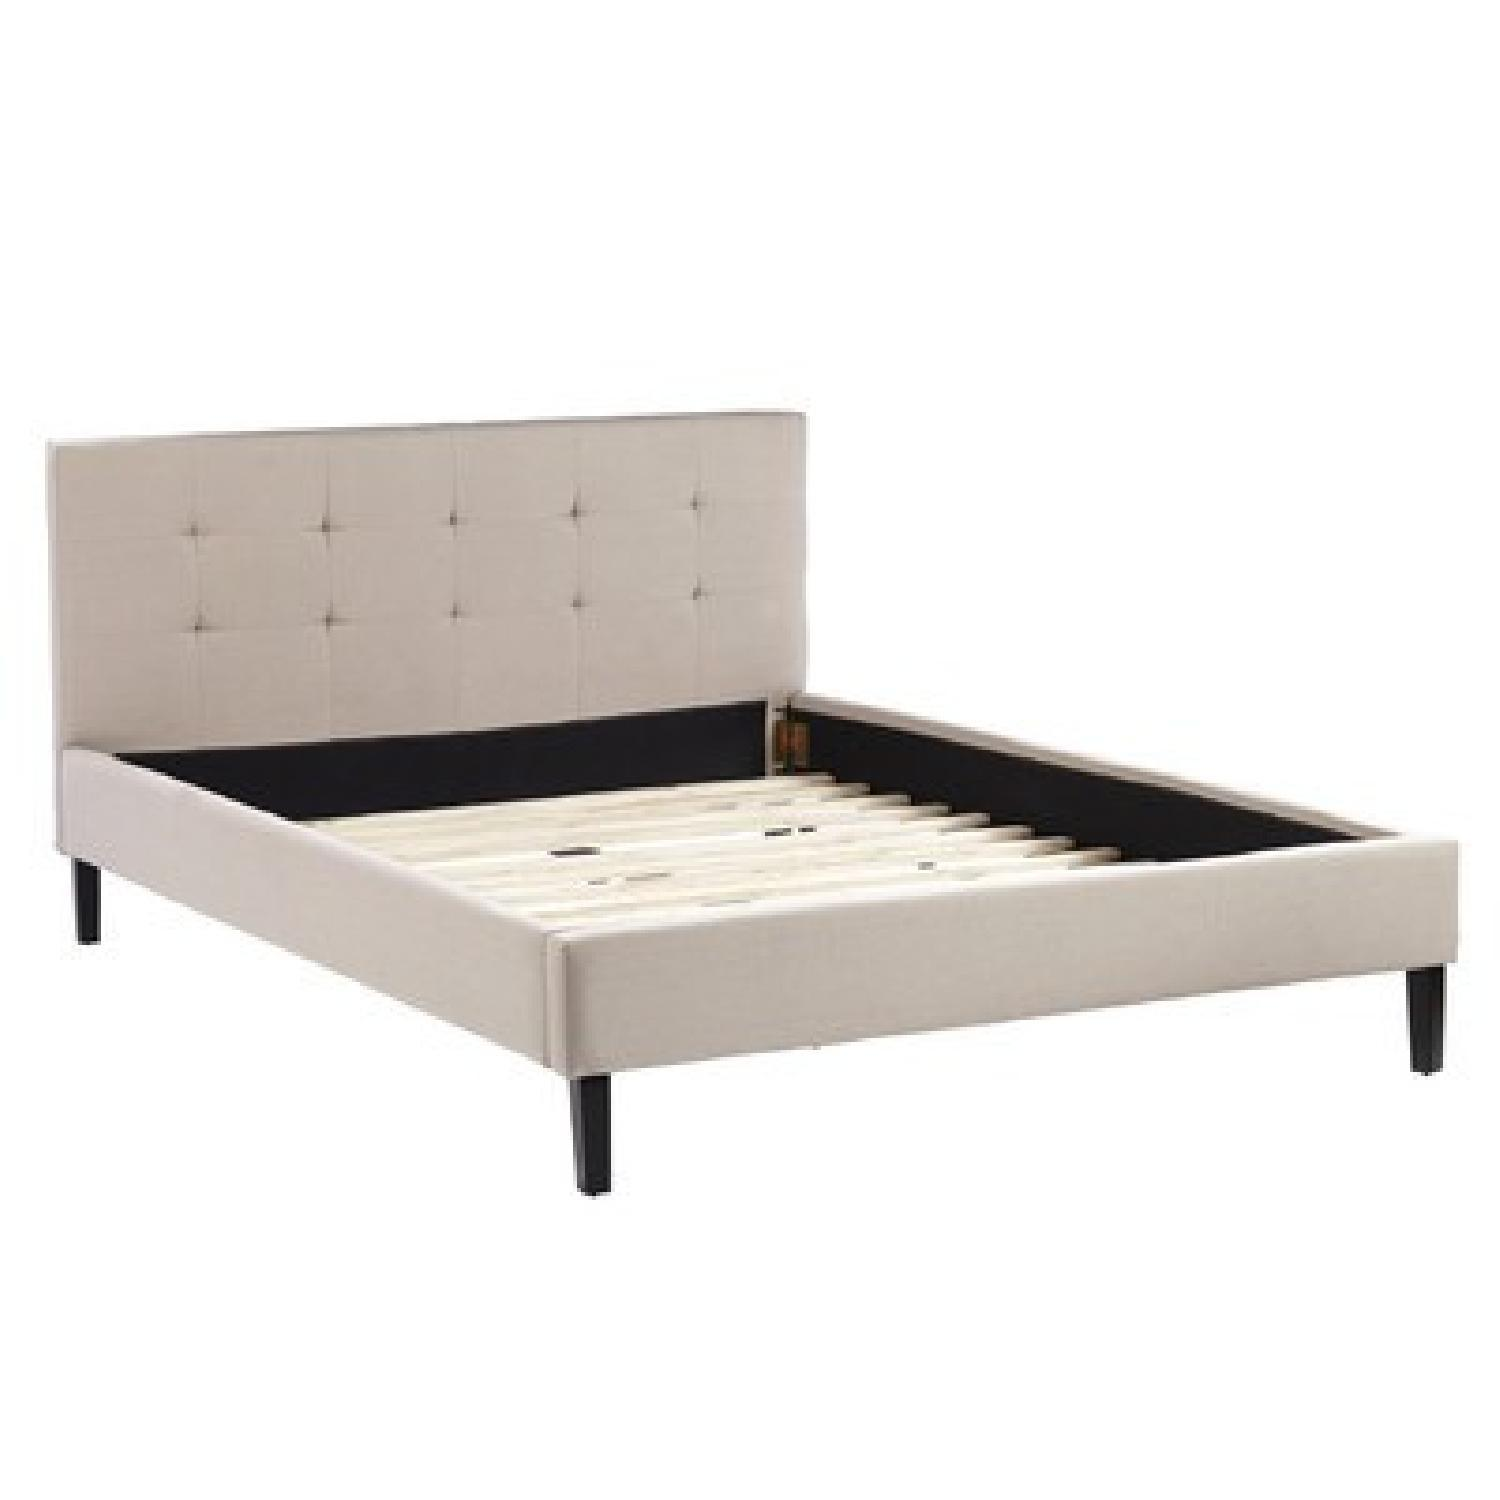 Queen Bed Frame w/ Linen Upholstered Tufted Headboard in Natural Oatmeal - image-1